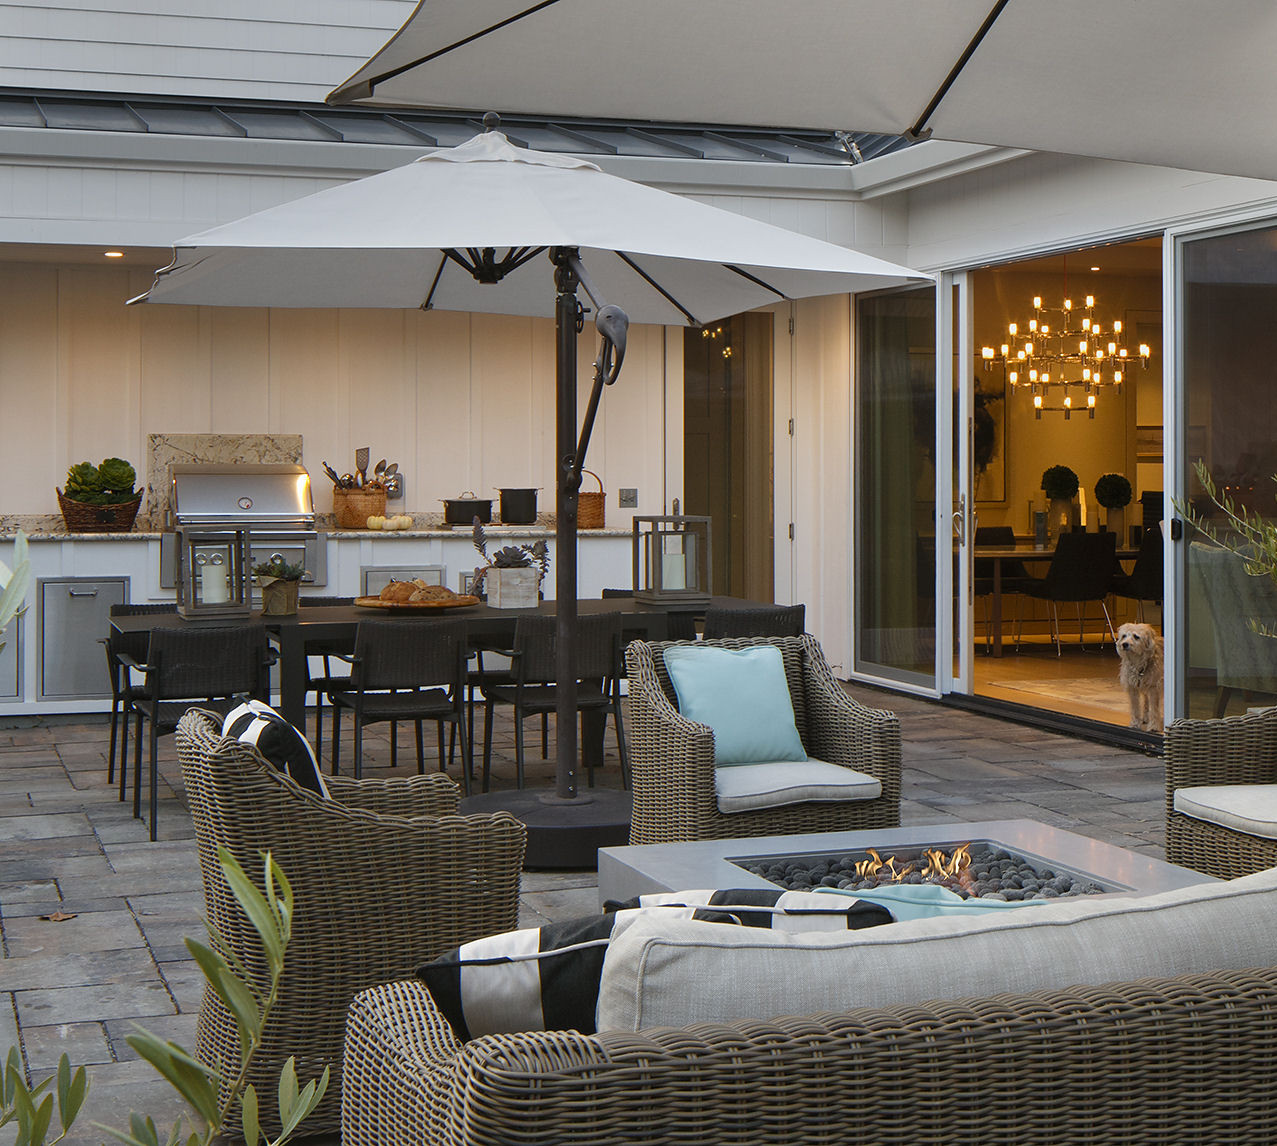 Lounge Area with fire pit